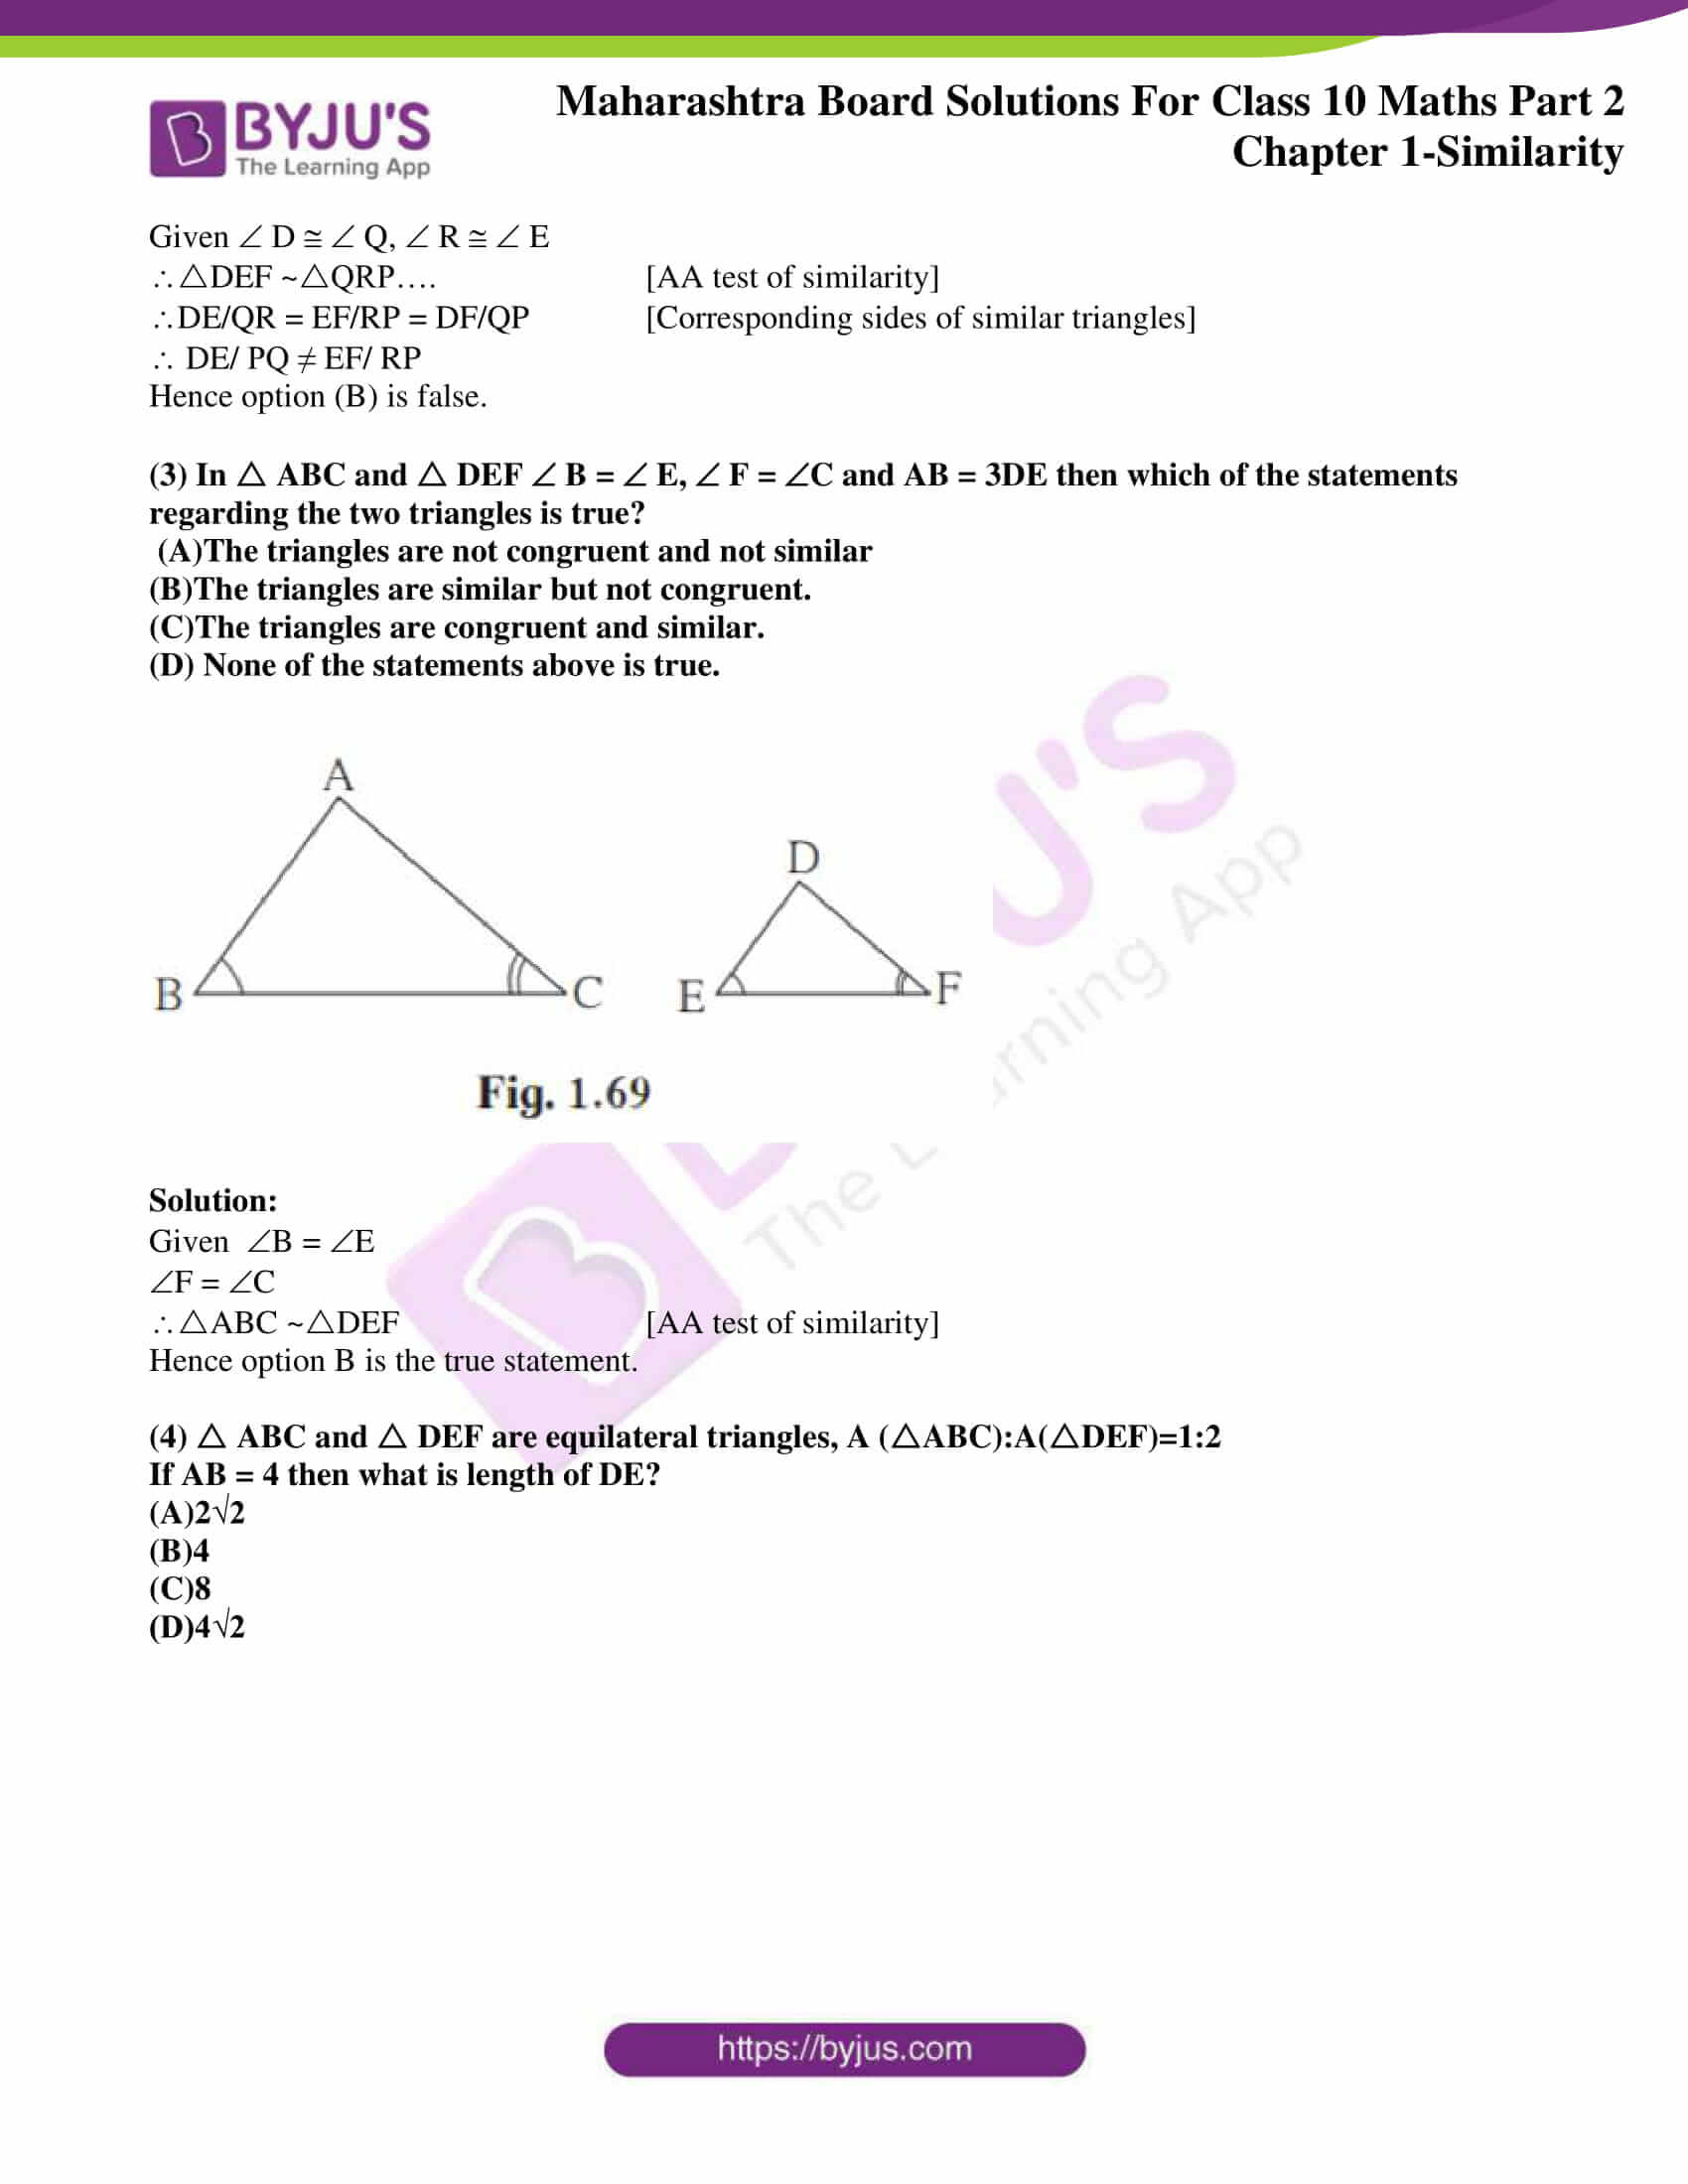 msbshse sol class 10 maths part 2 chapter 1 19